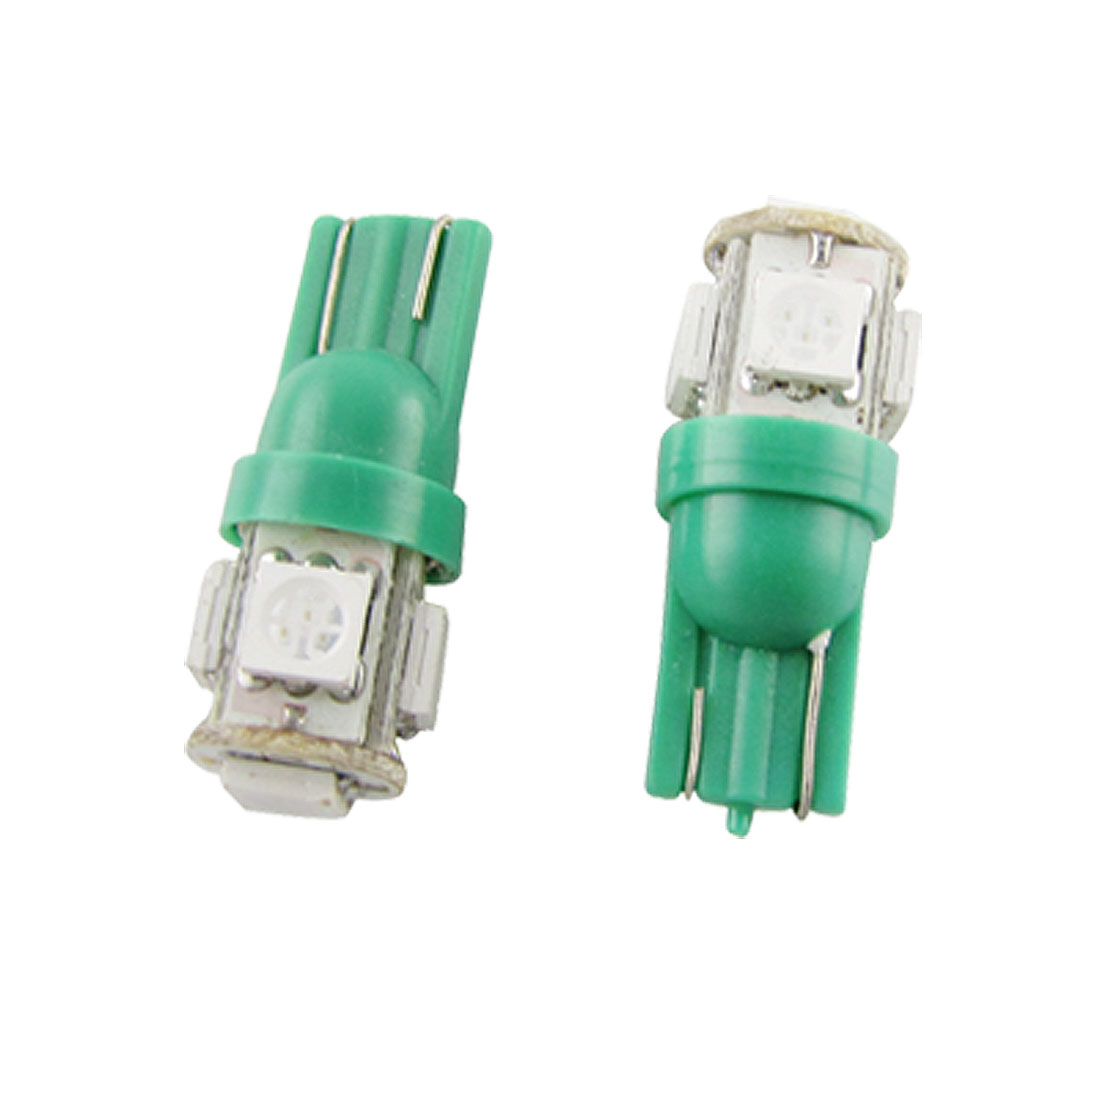 DC 12V Green T10 5050 5 SMD LEDs Car Turning Side Light Bulbs Pair